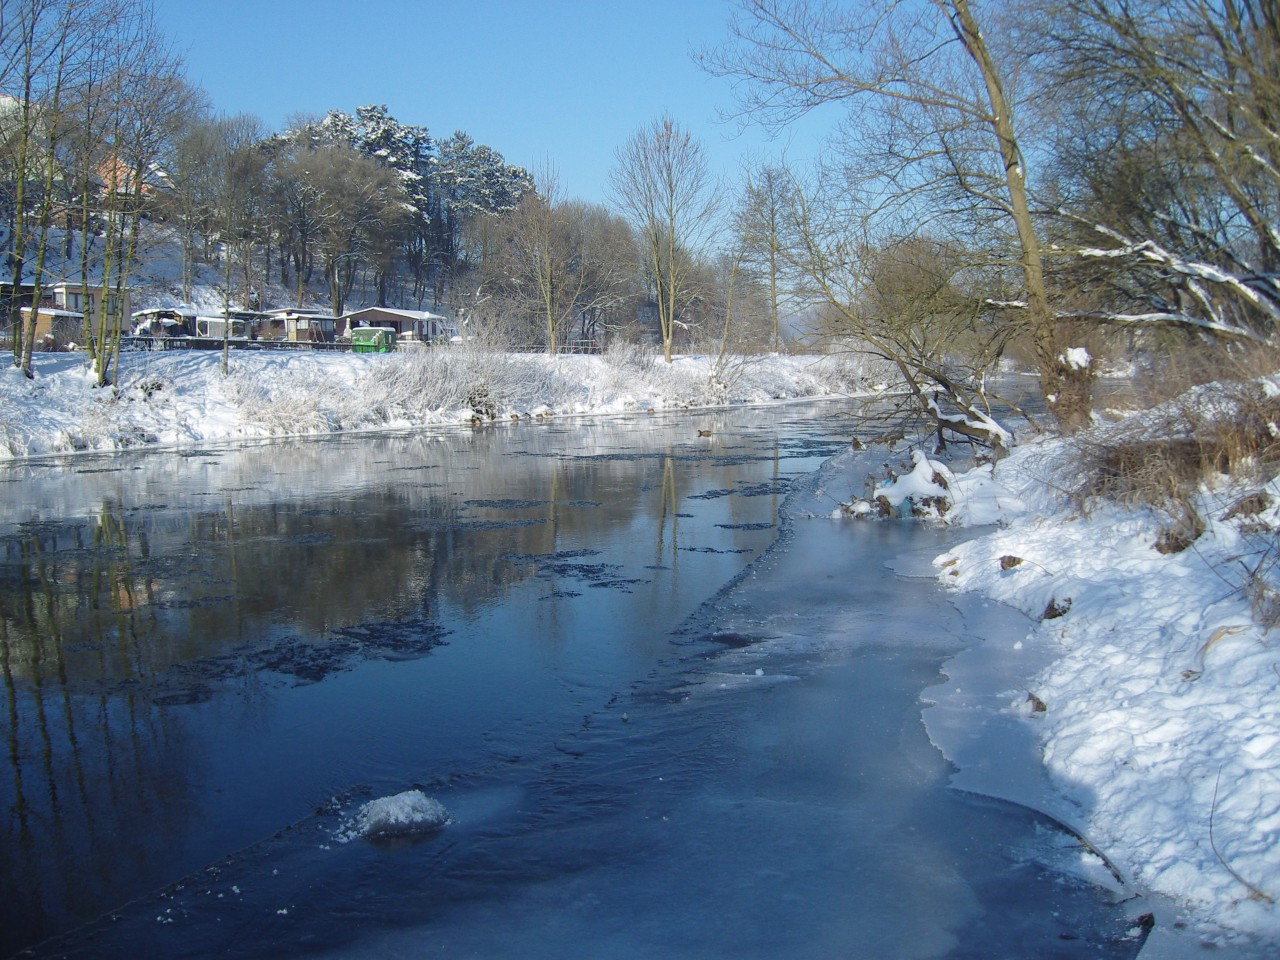 Winter in Meiningen